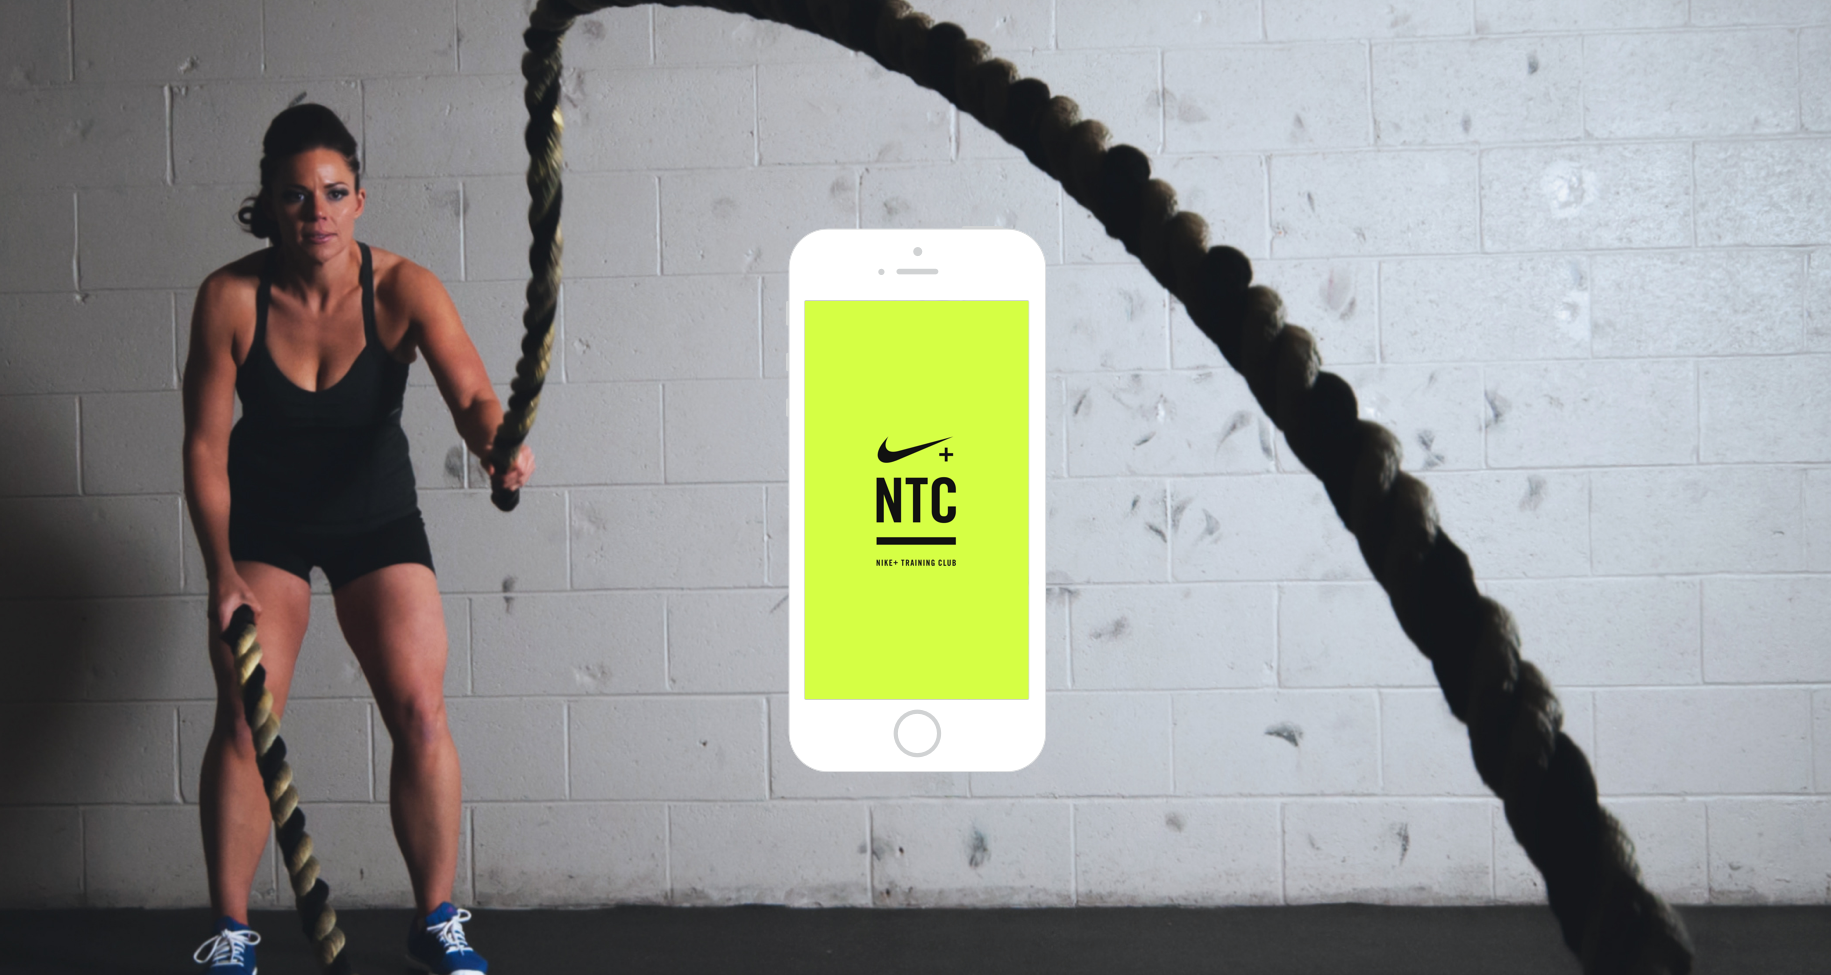 nike and training sport apps